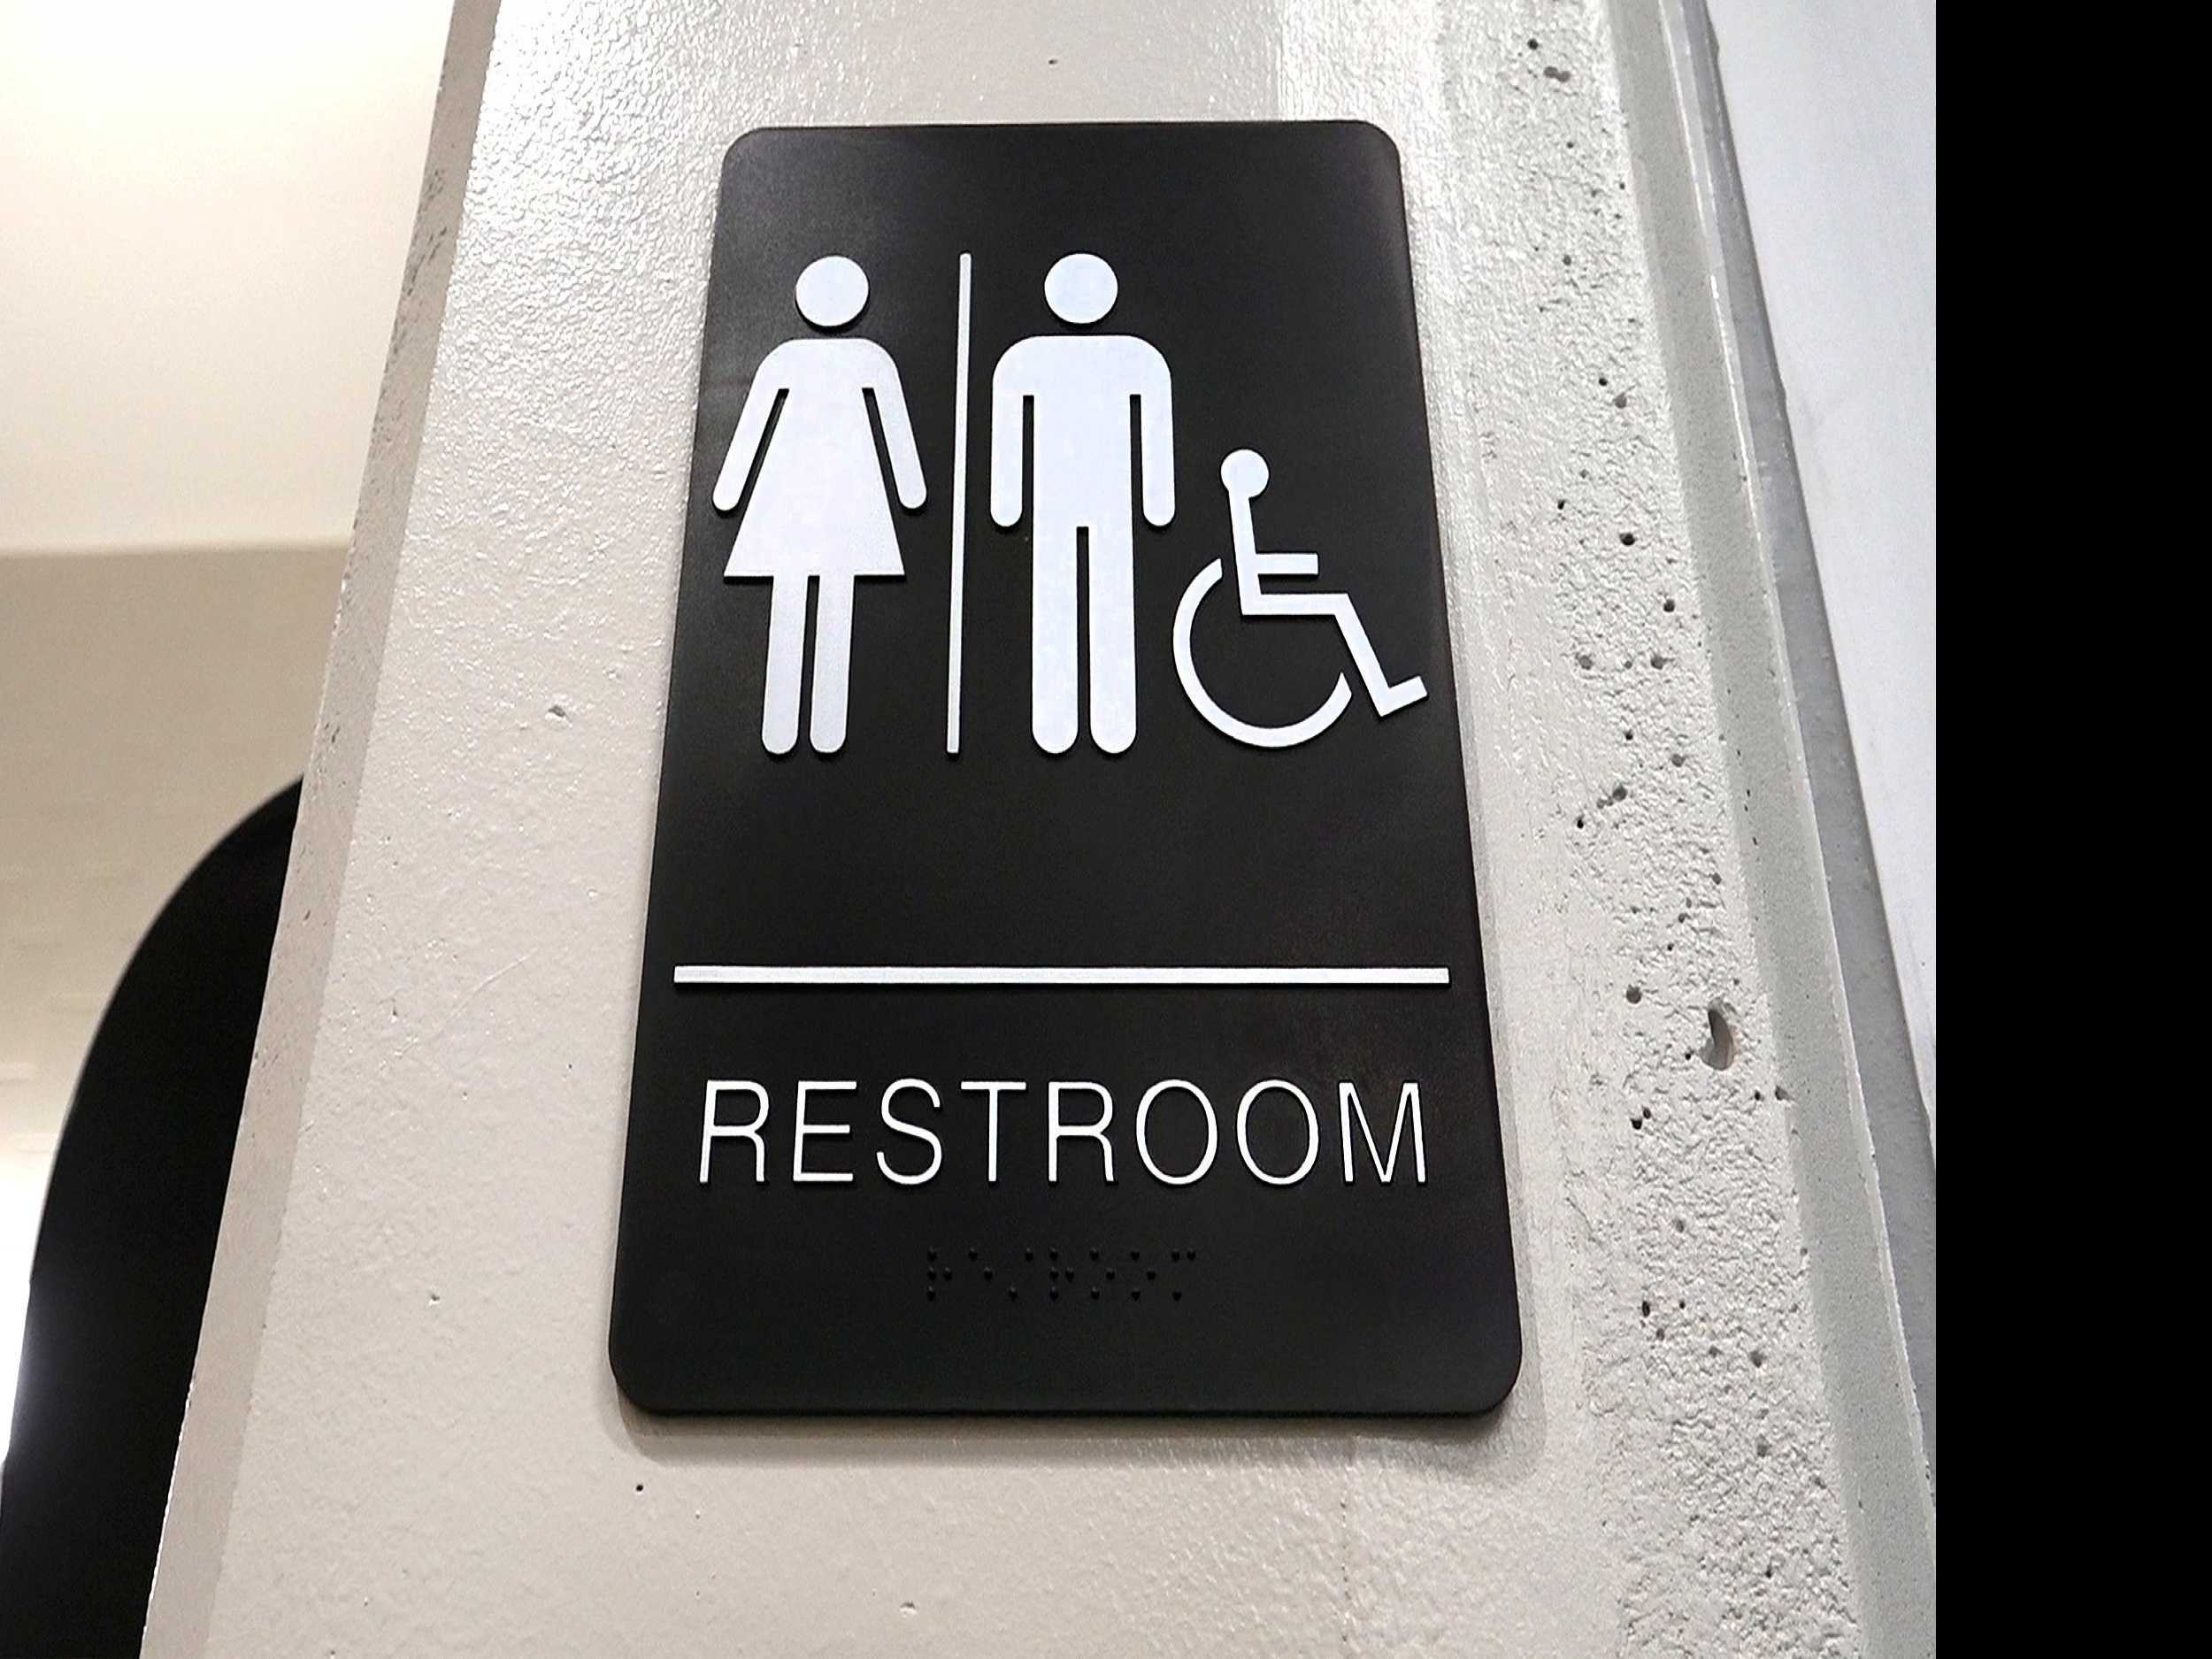 Missouri School District Embraces Gender-Neutral Bathrooms